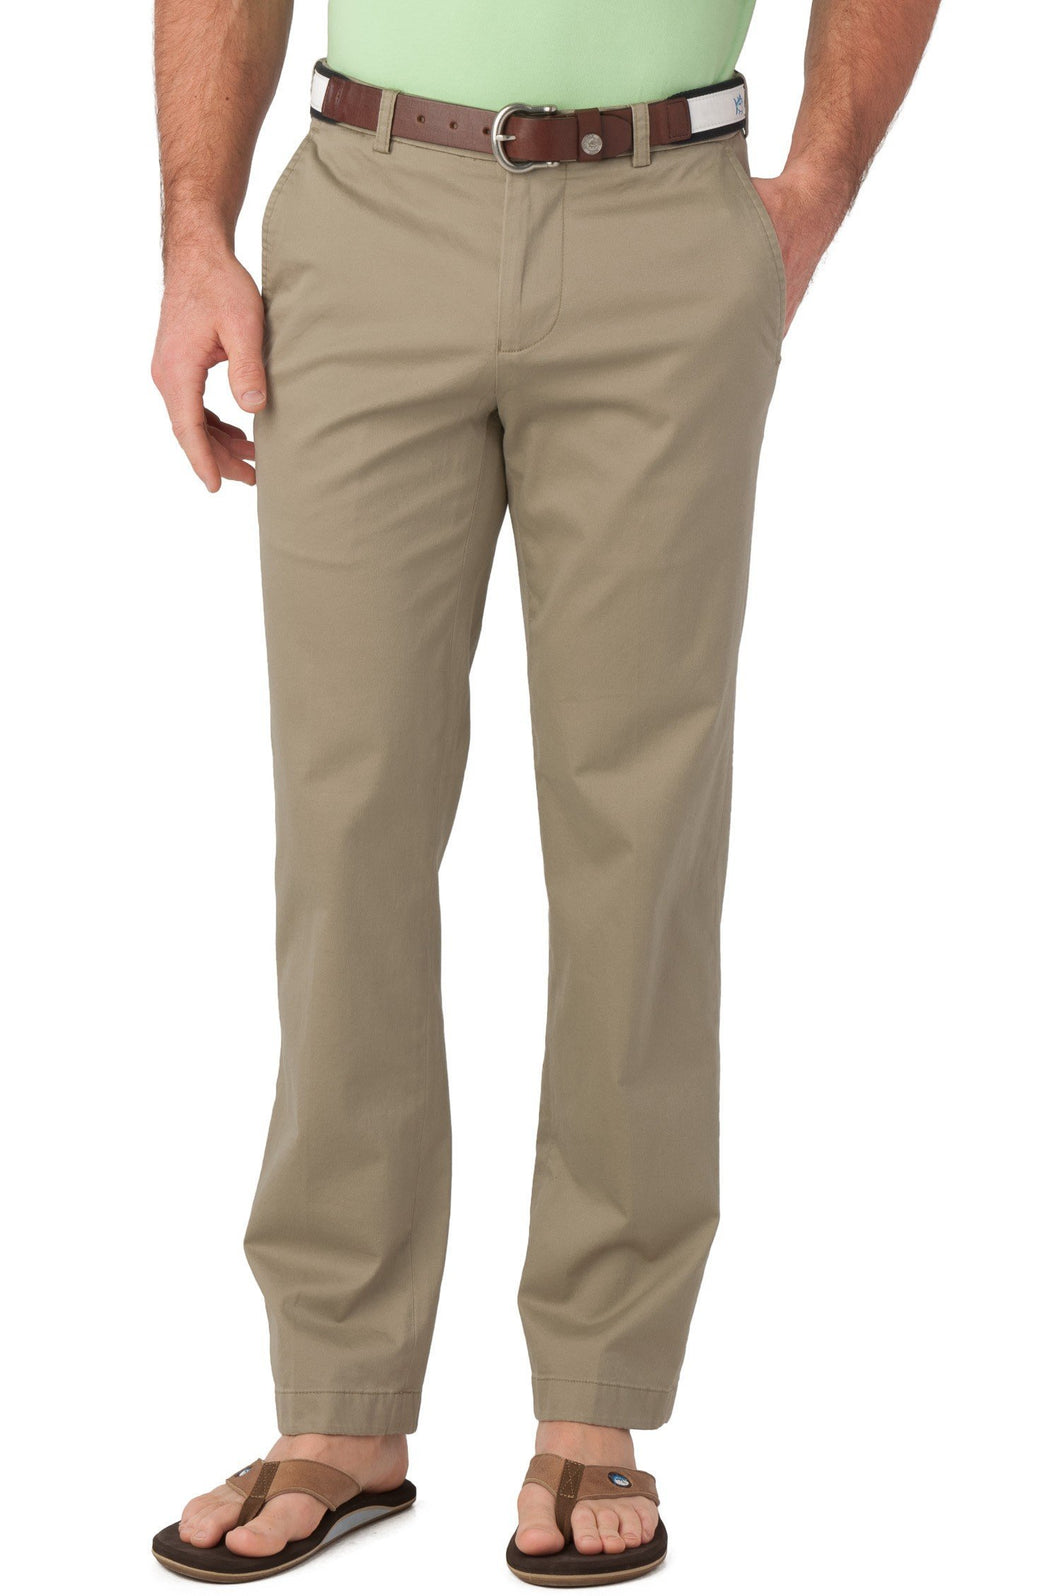 Southern Tide MEN - PANTS - DRESS PANTS Southern Tide, Summer Weight Channel Marker Classic Fit Pant, Sandstone Khaki